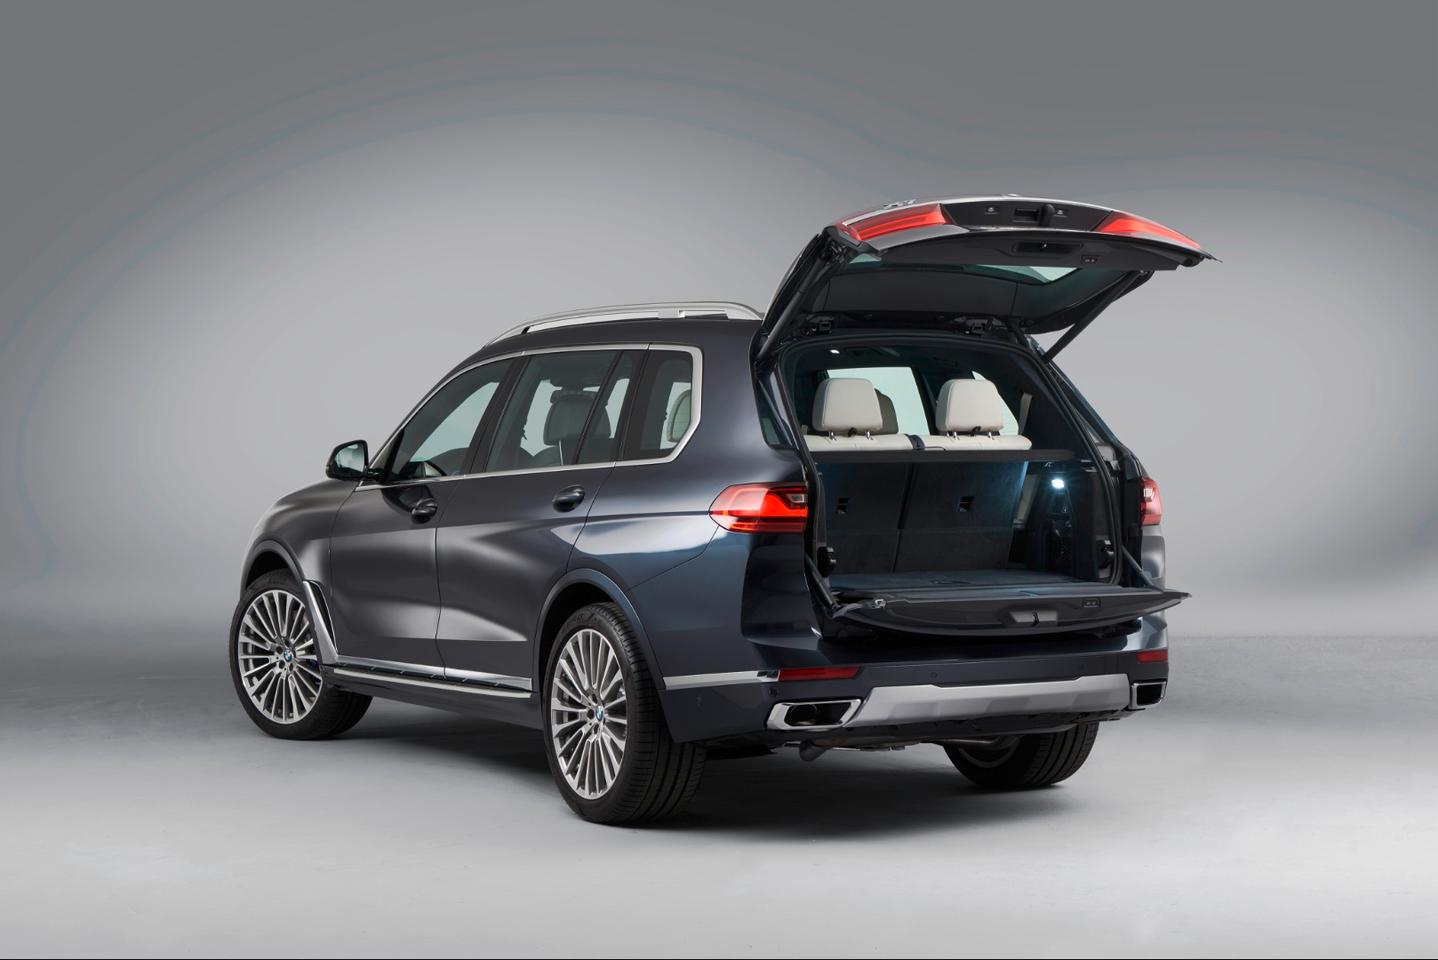 2019 BMW X7: clamshell tailgate design